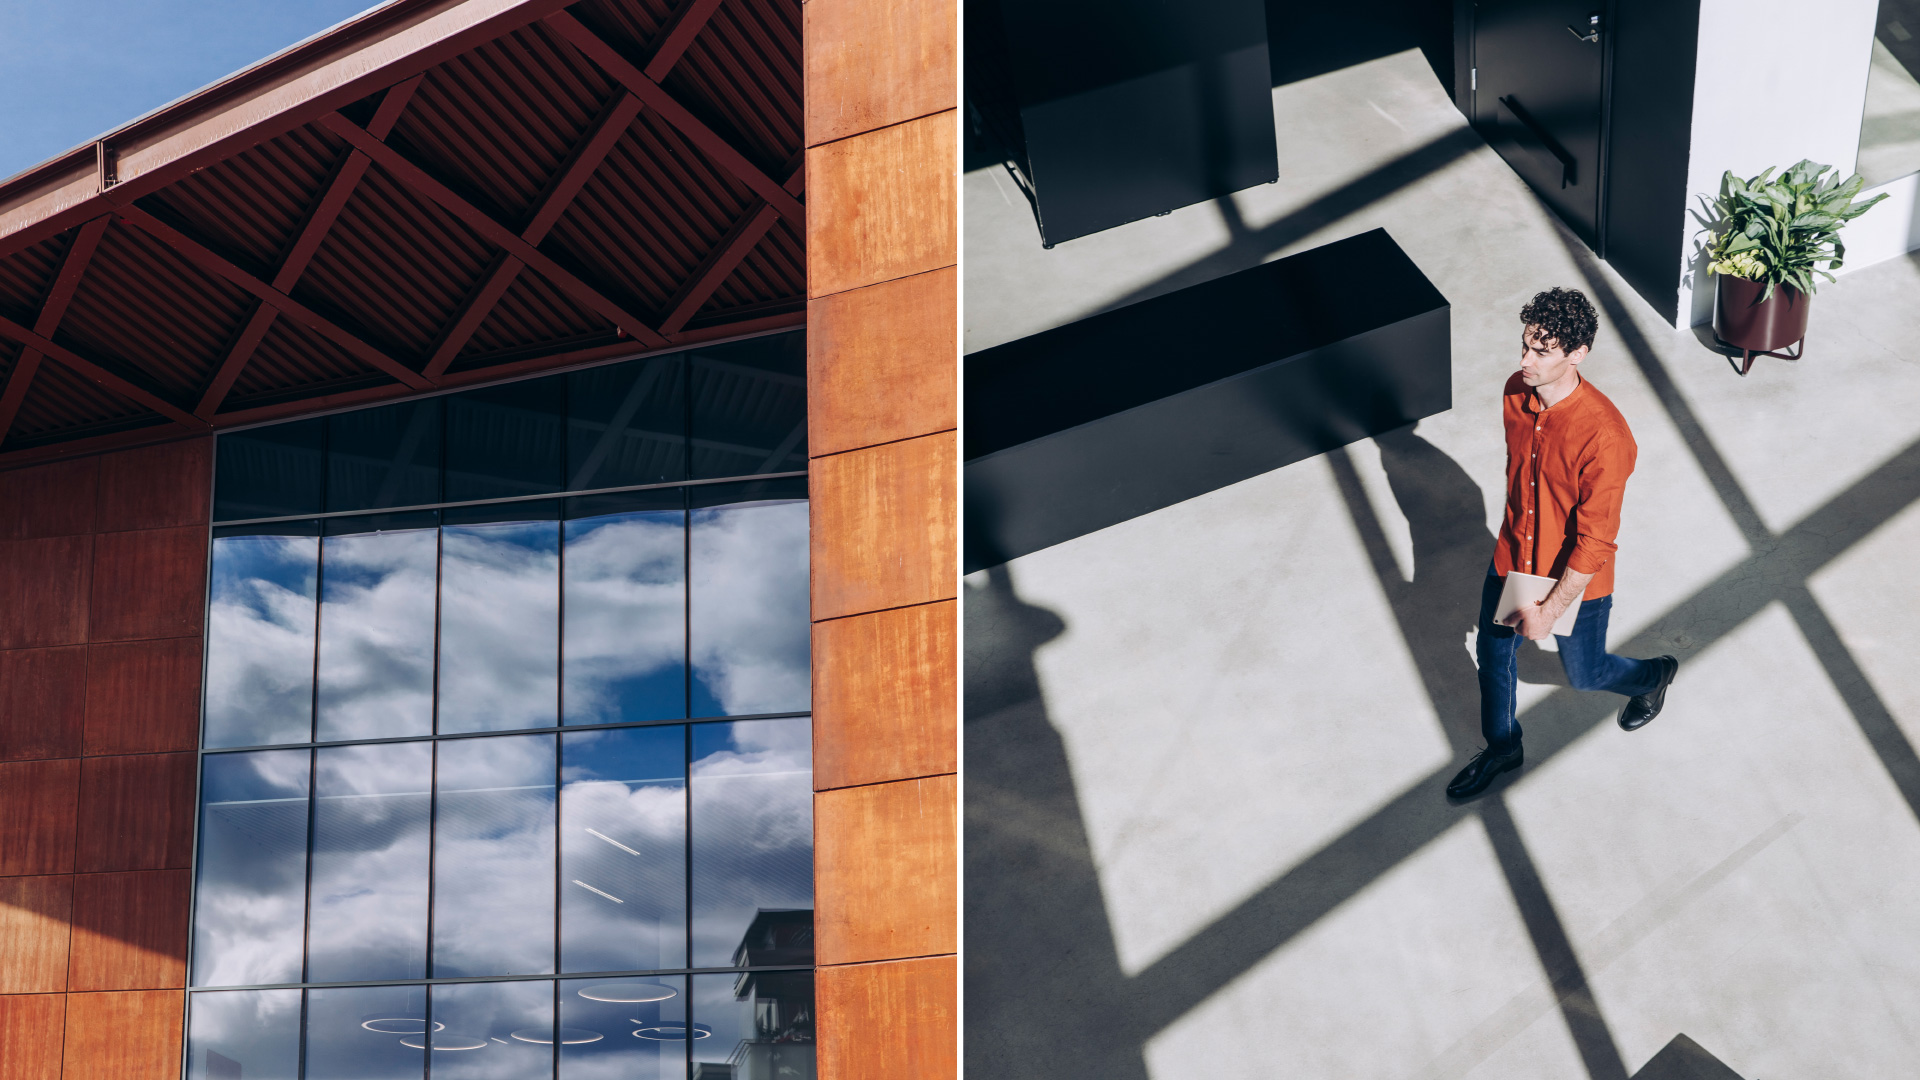 A decorative picture of a detail of a building and a man walking in the building.